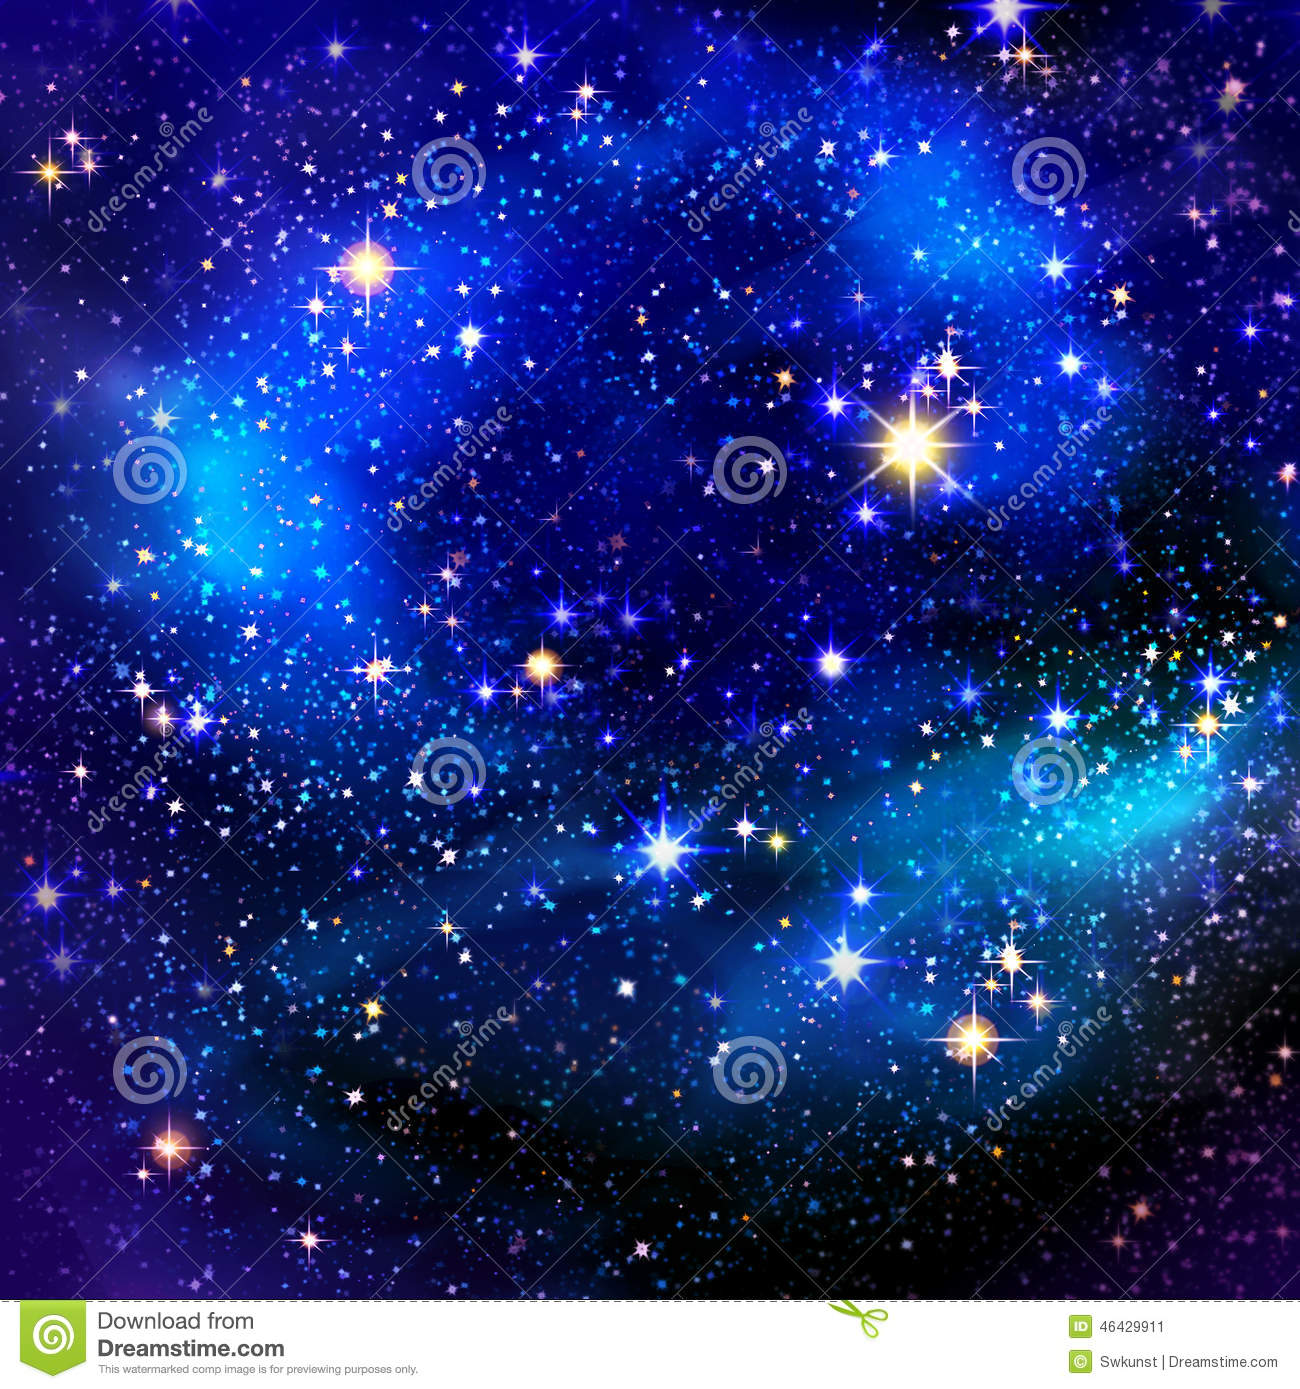 Christmas night sky background and stars.